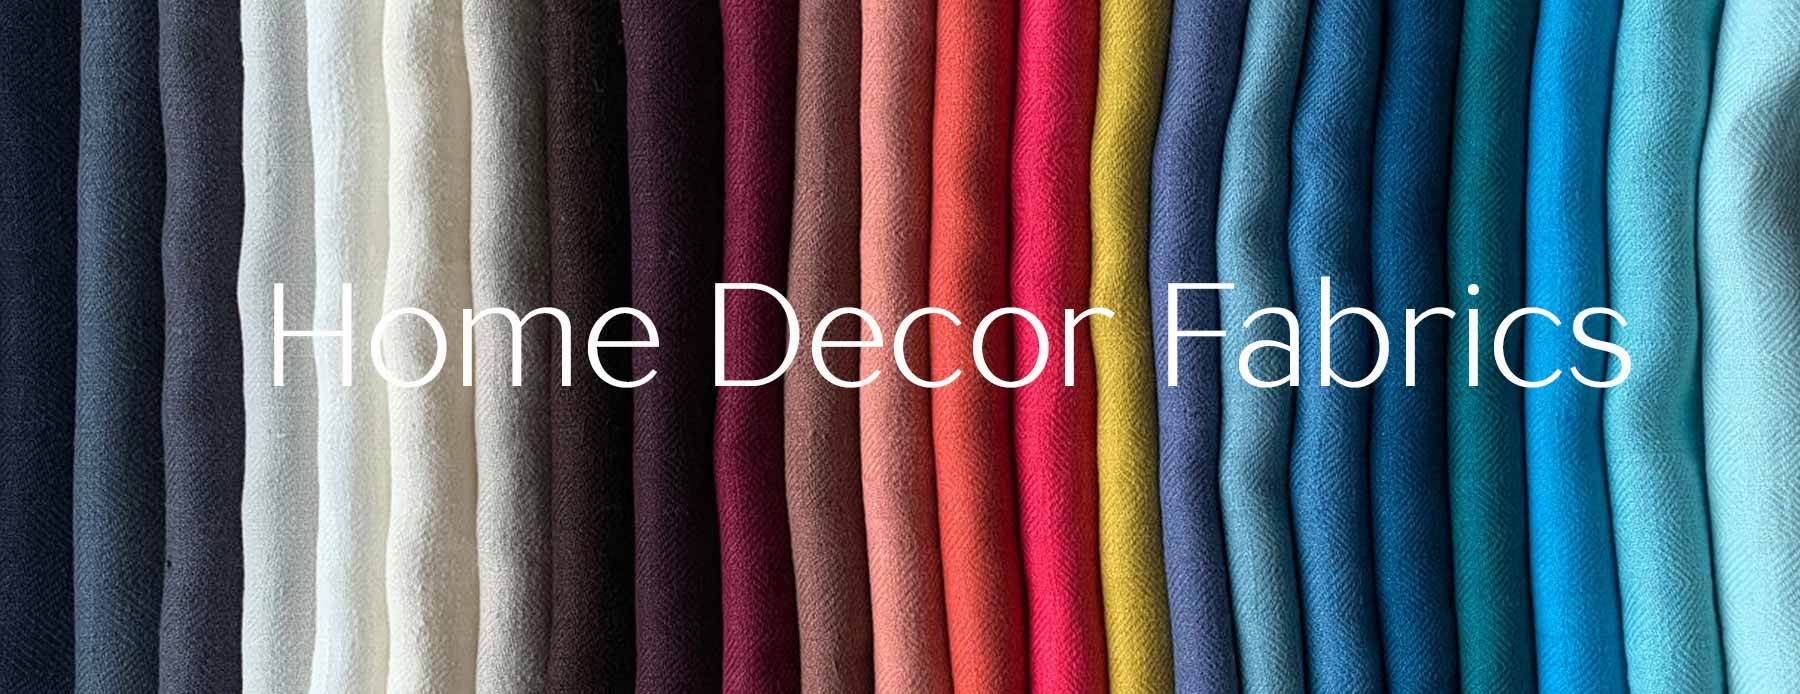 Home Decor Fabrics